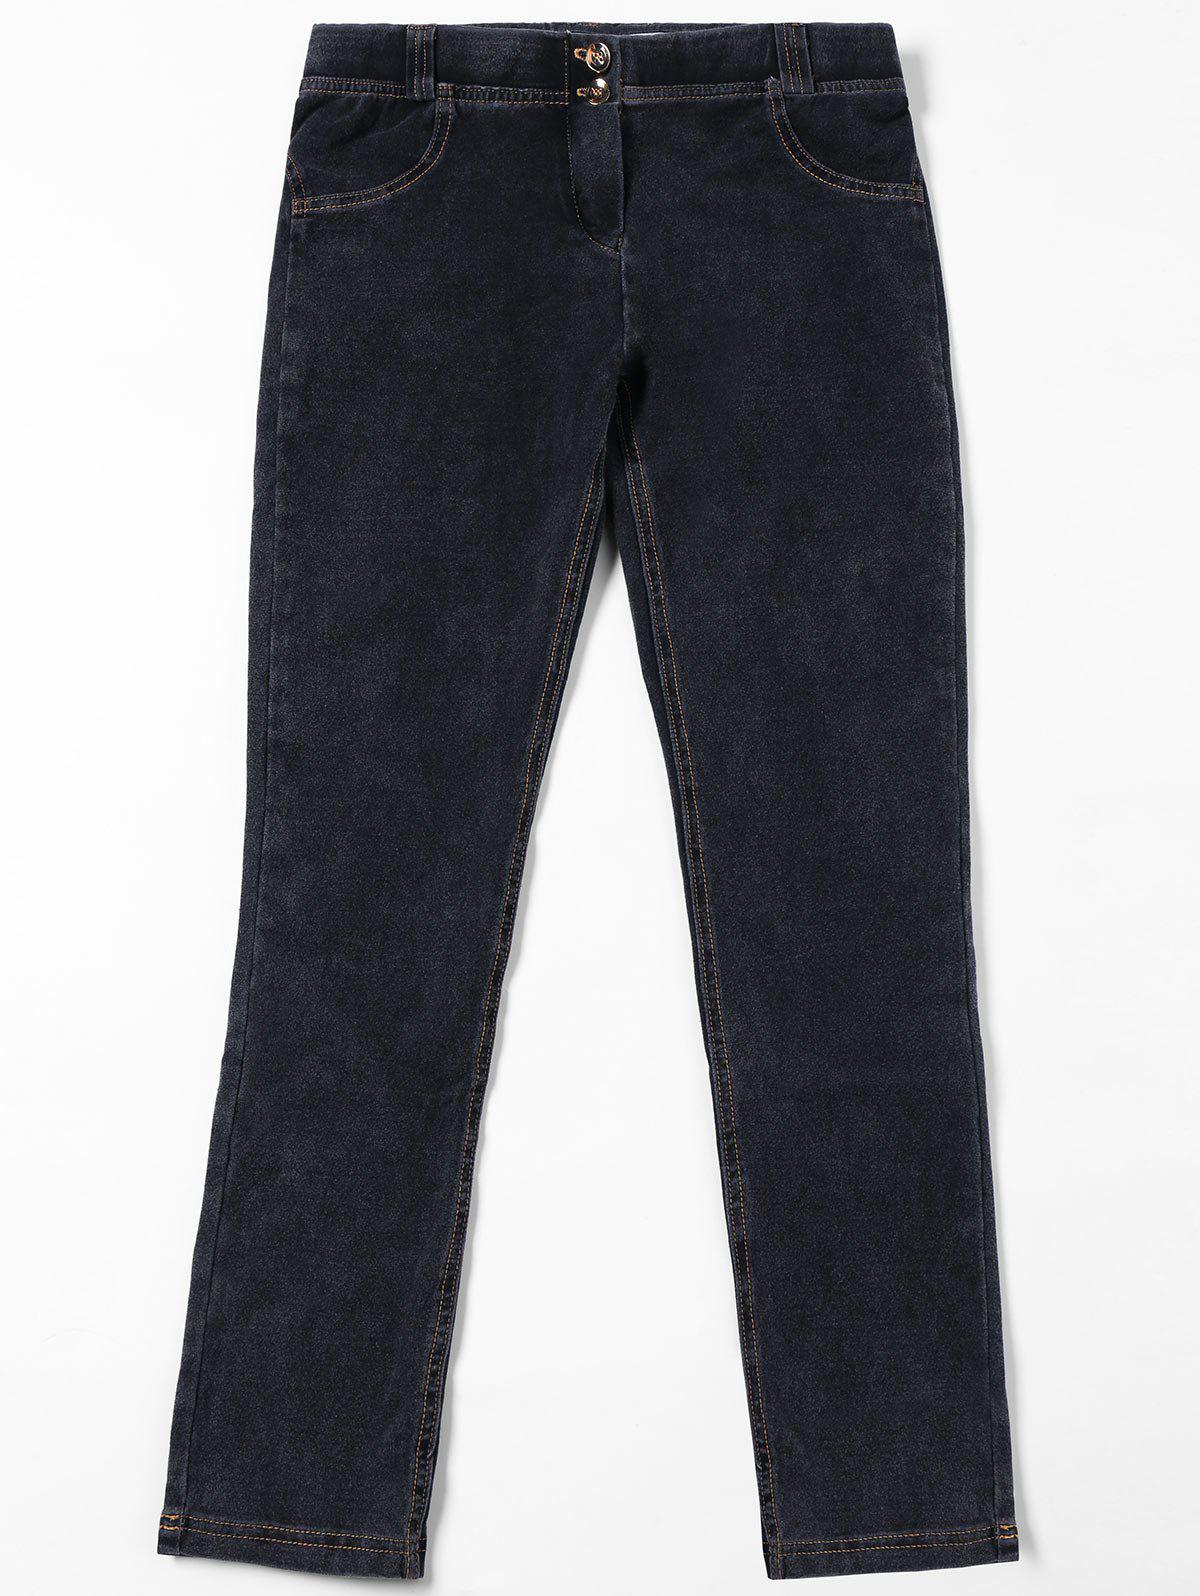 Topstitch Patch Pockets Jeans - Noir M